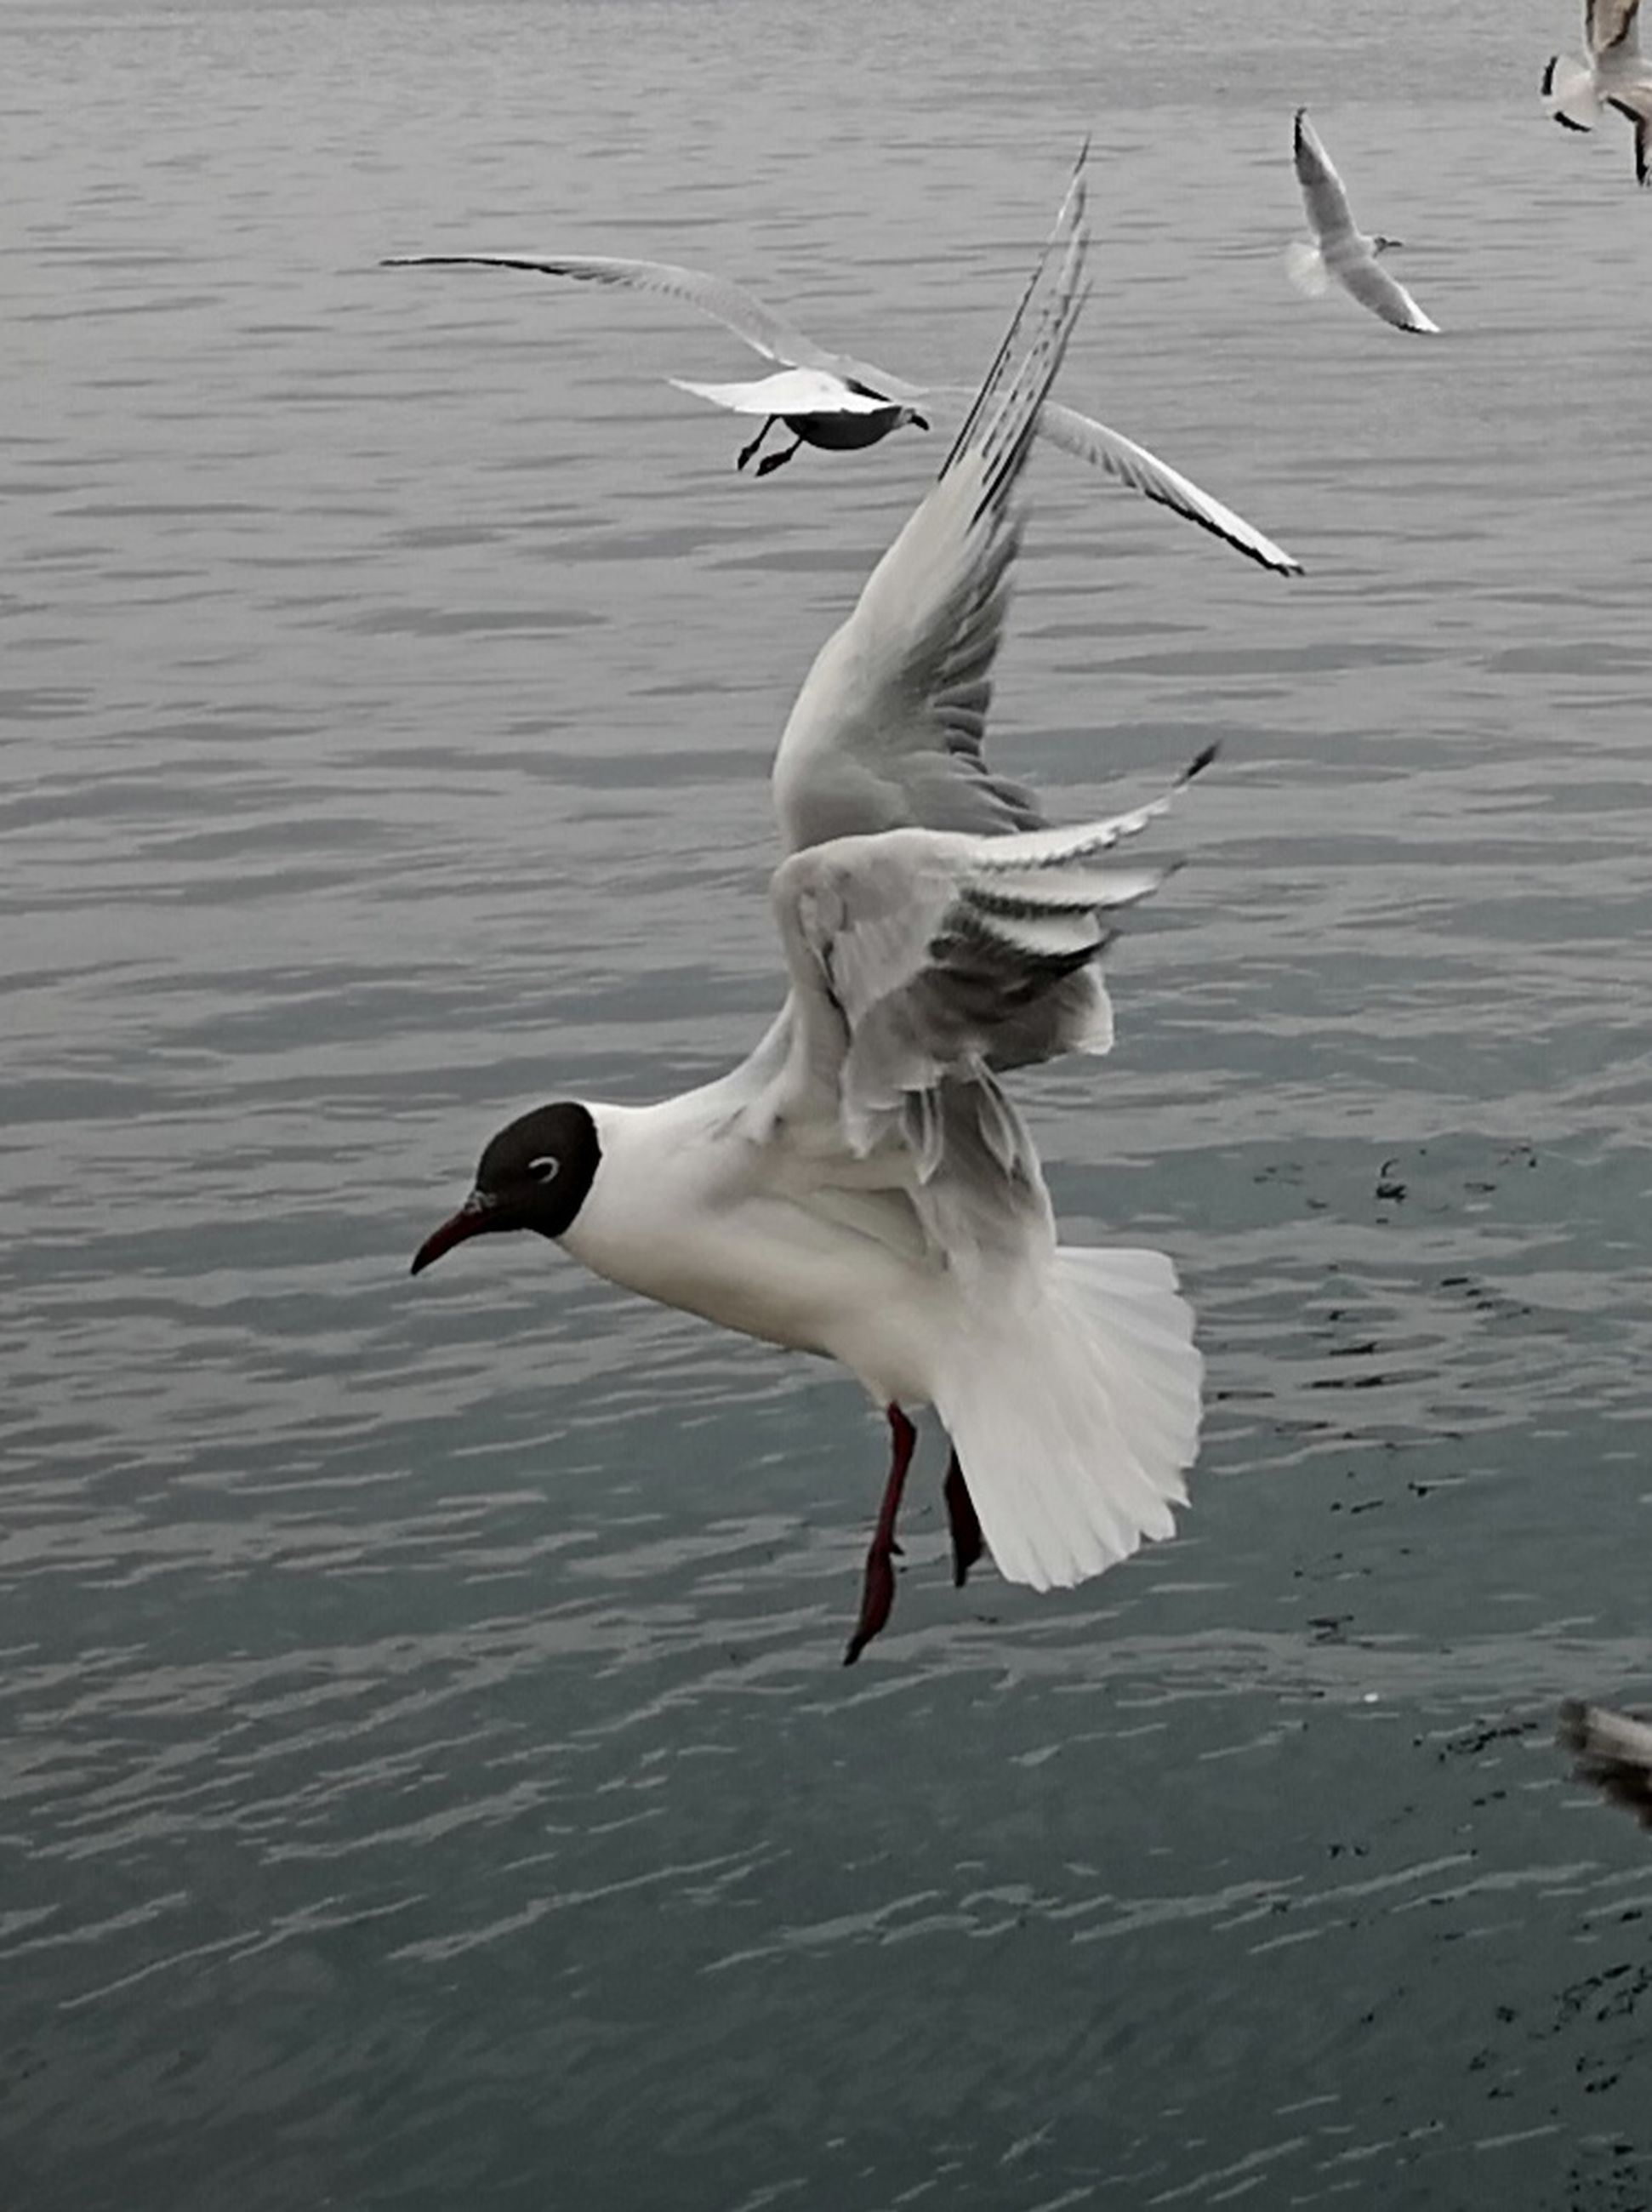 animals in the wild, animal wildlife, animal themes, bird, animal, vertebrate, flying, water, spread wings, group of animals, waterfront, seagull, nature, no people, water bird, lake, day, mid-air, flapping